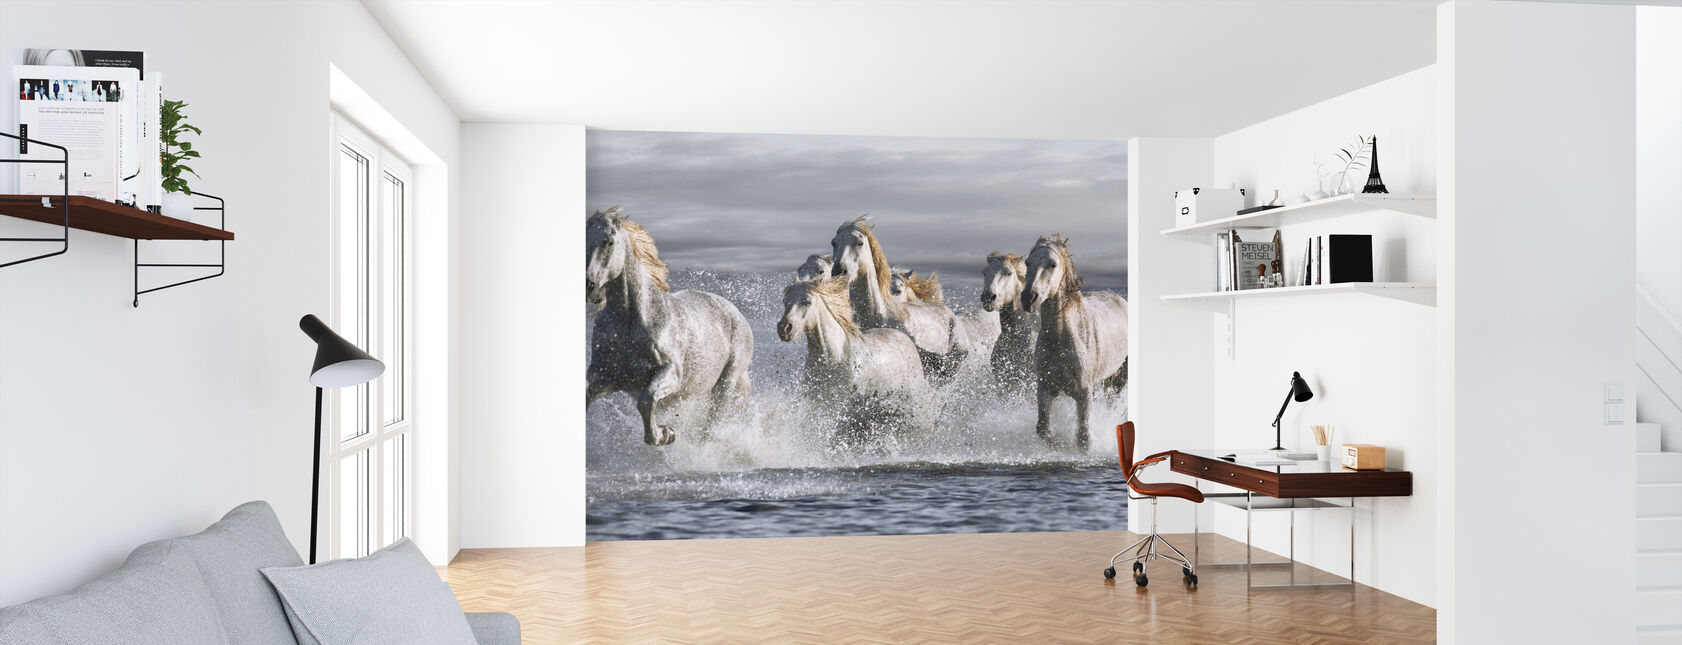 Horses Running at the Beach - Wallpaper - Office